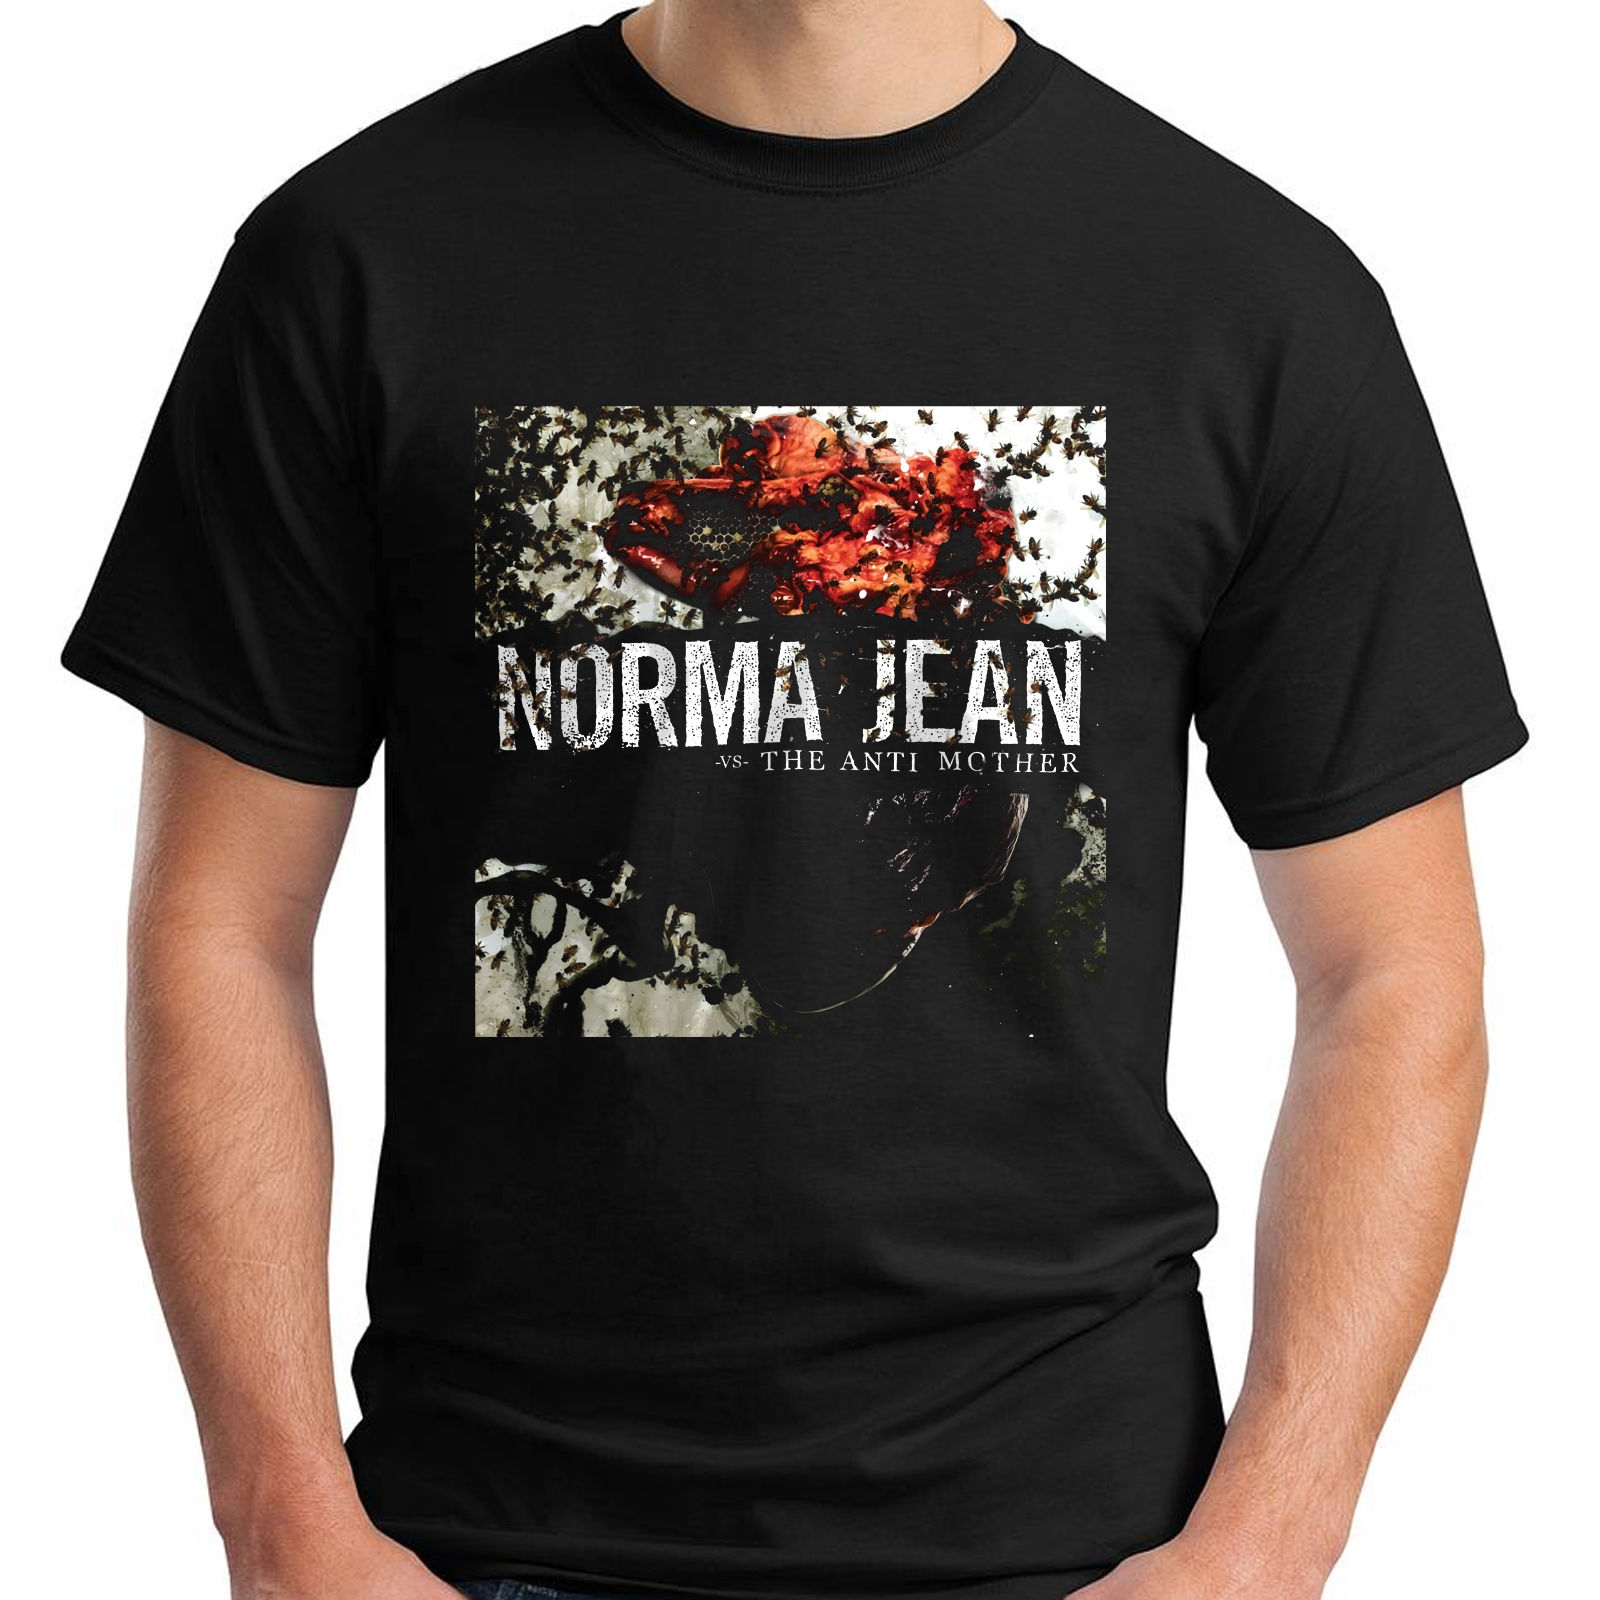 NORMA JEAN The Anti Mother Metalcore Band Sleeve Black Mens T-Shirt Size S-5XL T Shirt Discount 100 % Cotton